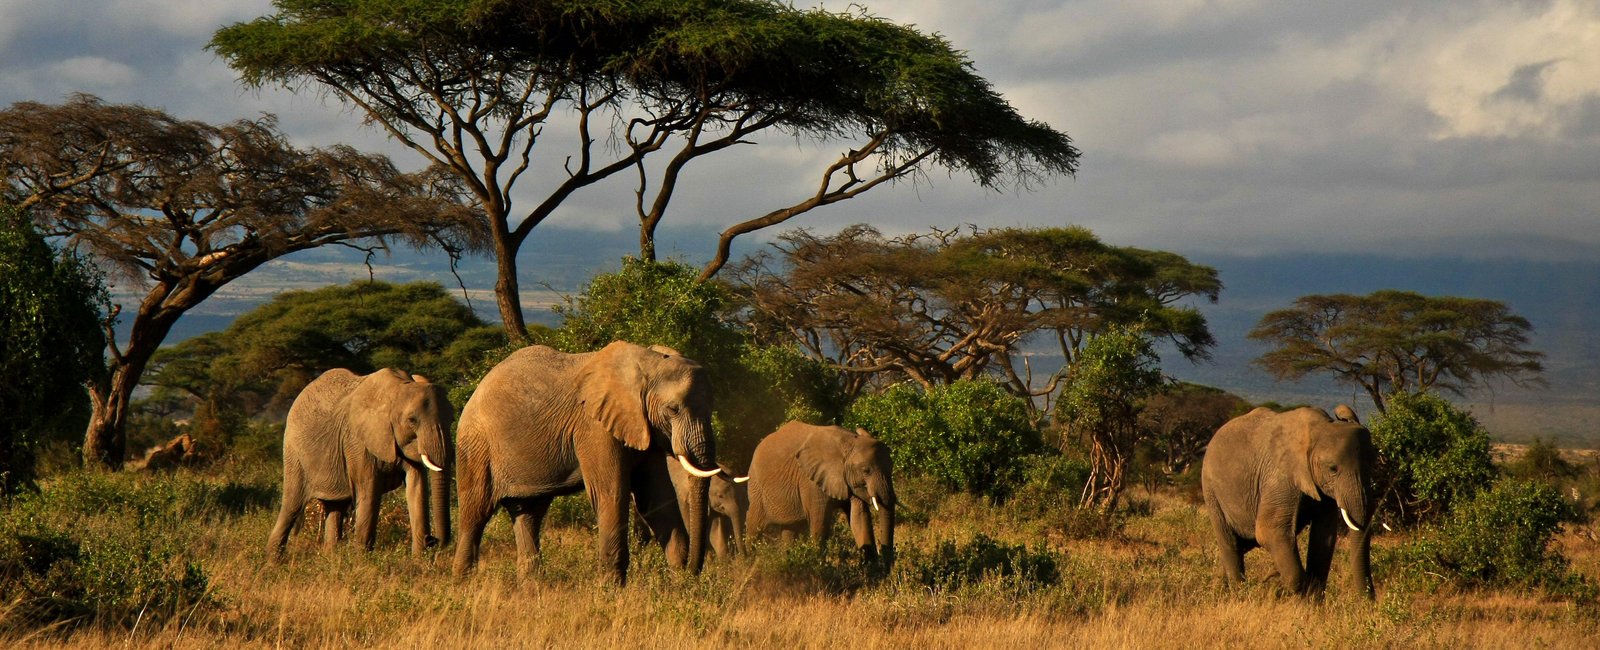 Elephants and Mt Kilimanjaro